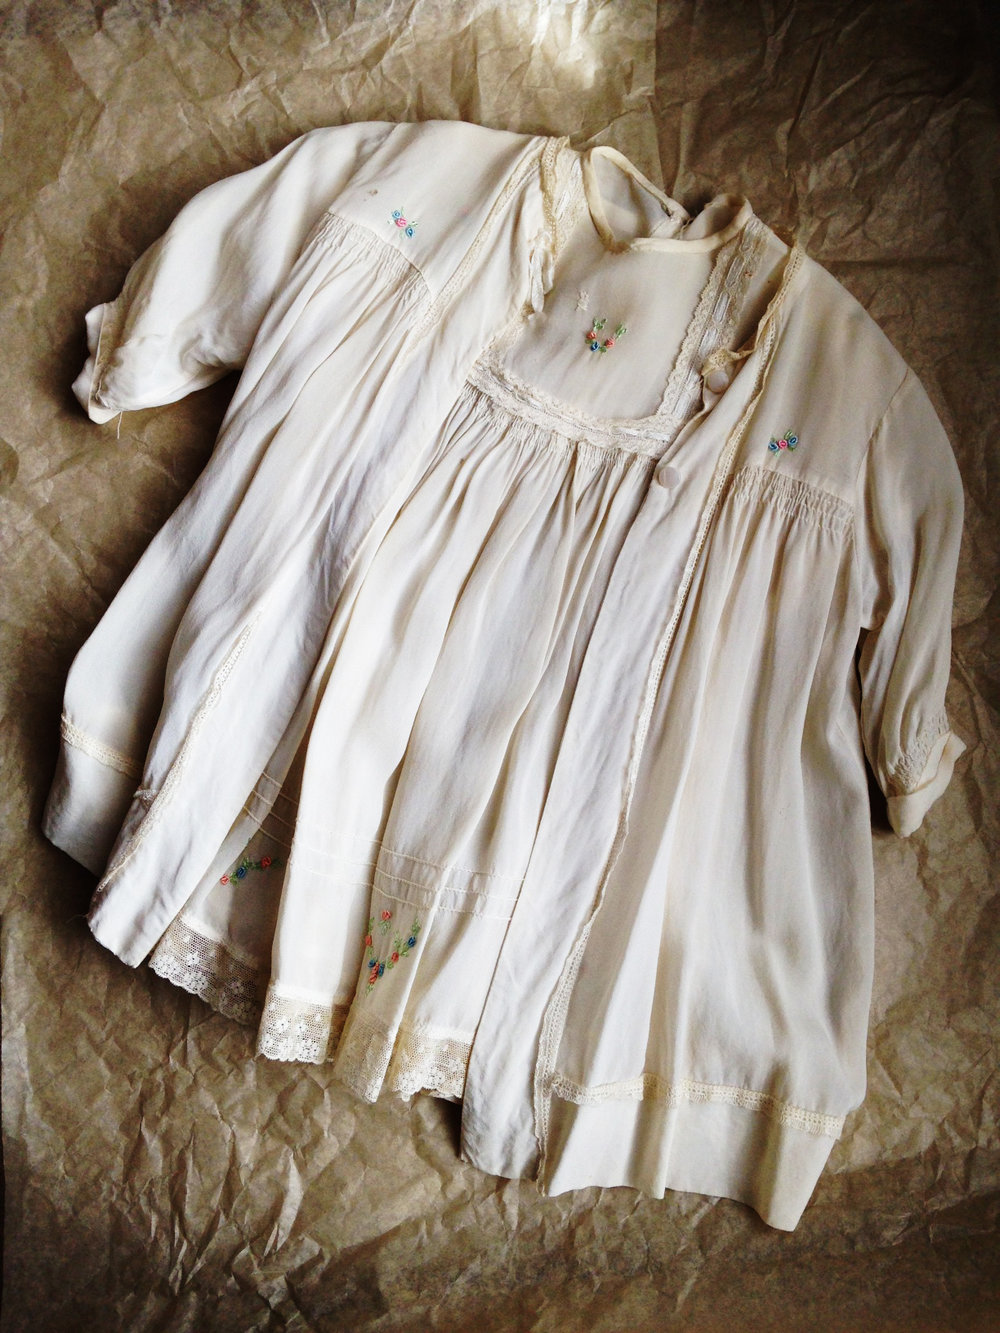 My christening 'gown' (as they were known then)- aged silk, hand smocking & rosebud trimmed. Definitely 'vintage'.